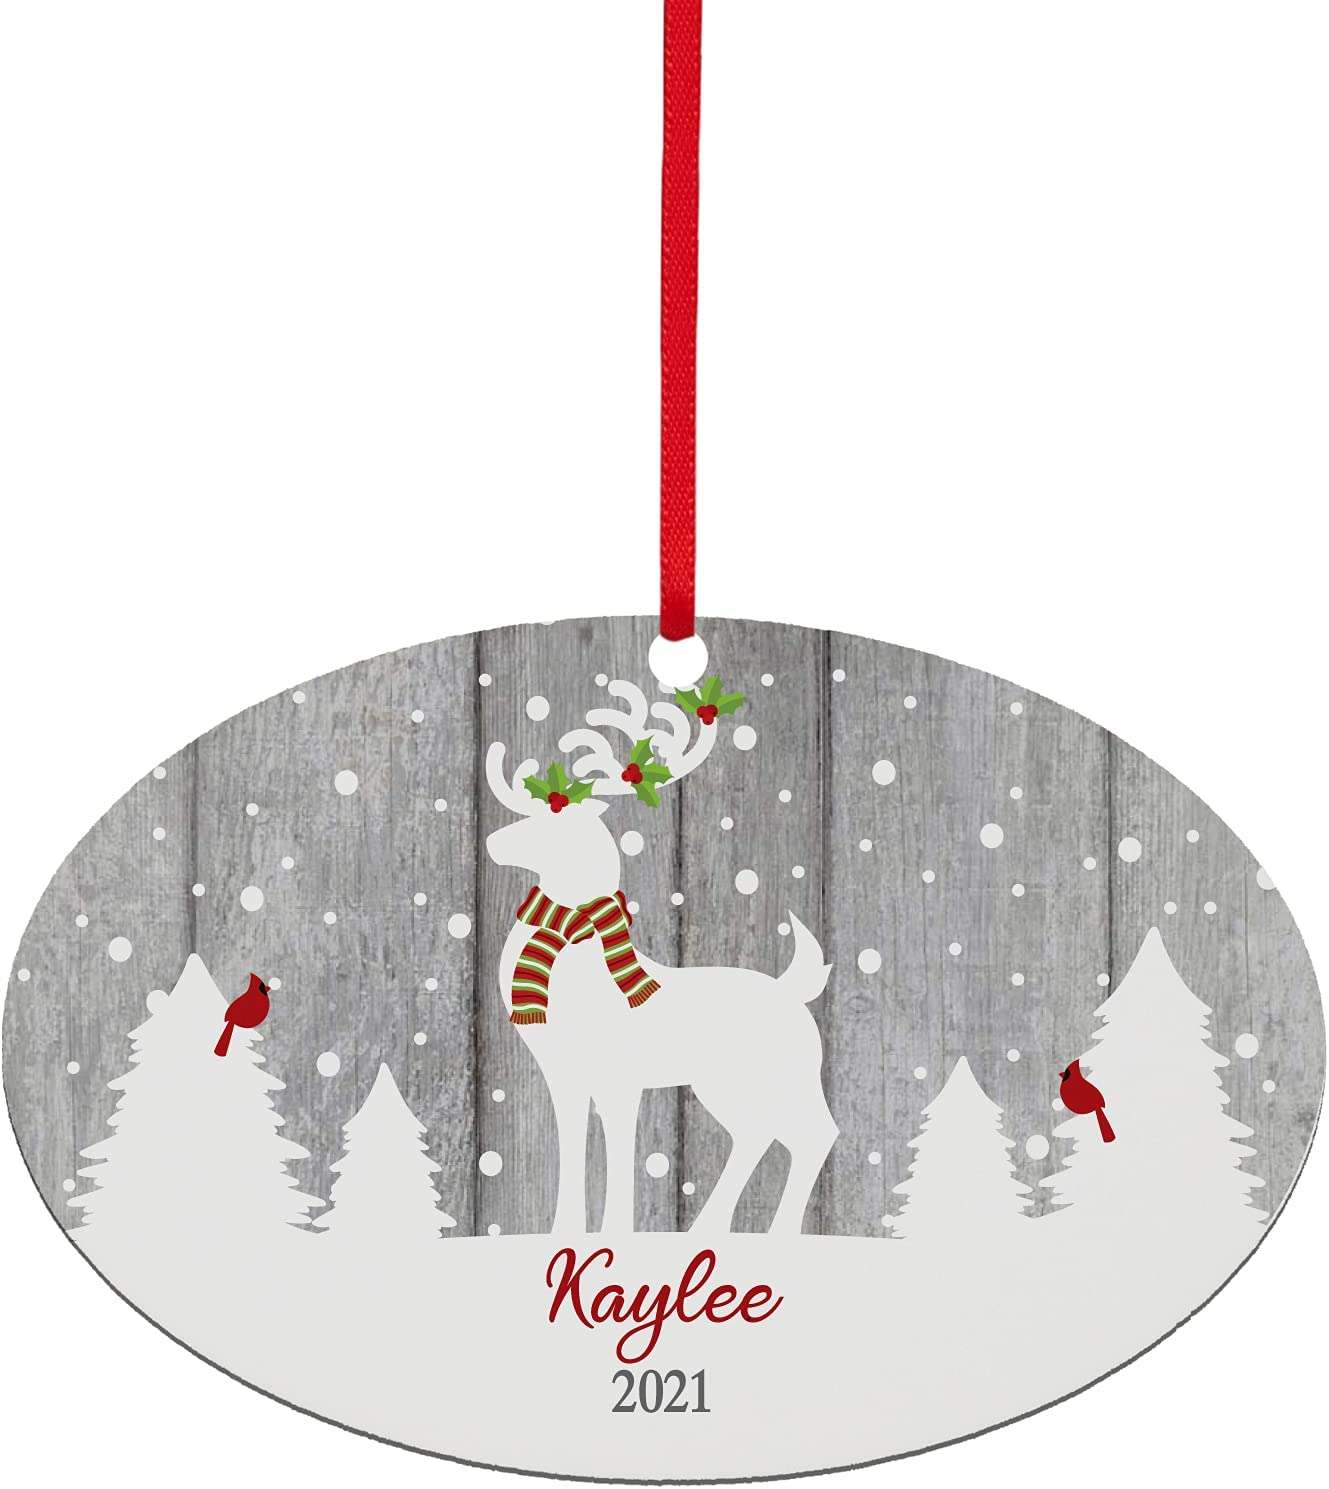 Let's Make Memories - Safety and trust Personalized a Christmas It's Free shipping Ornament W